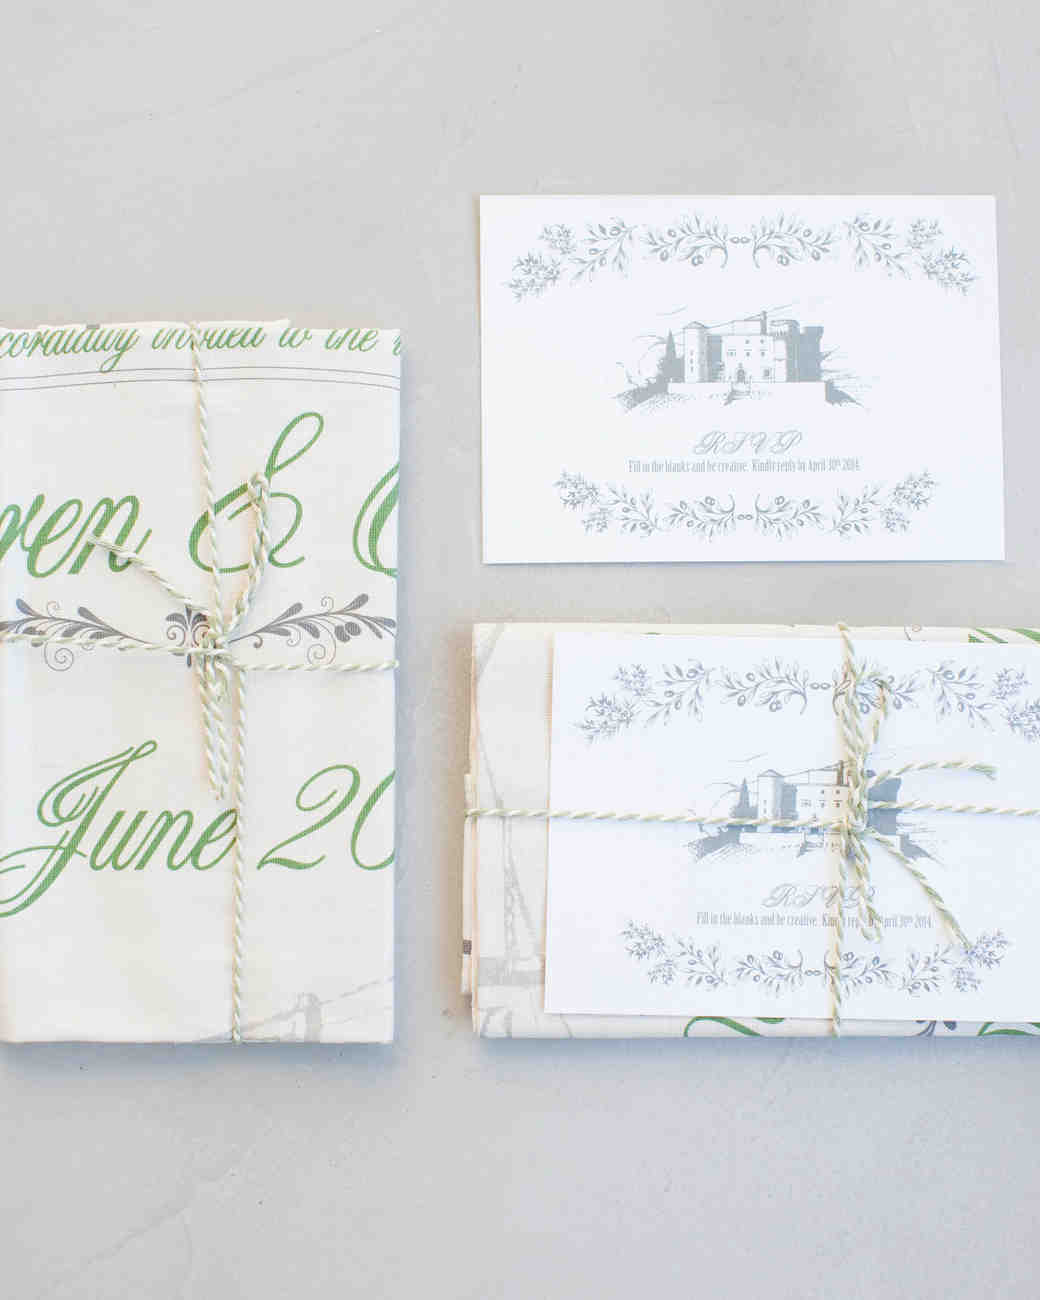 lauren-ollie-wedding-invitation-1-s111895-0515.jpg